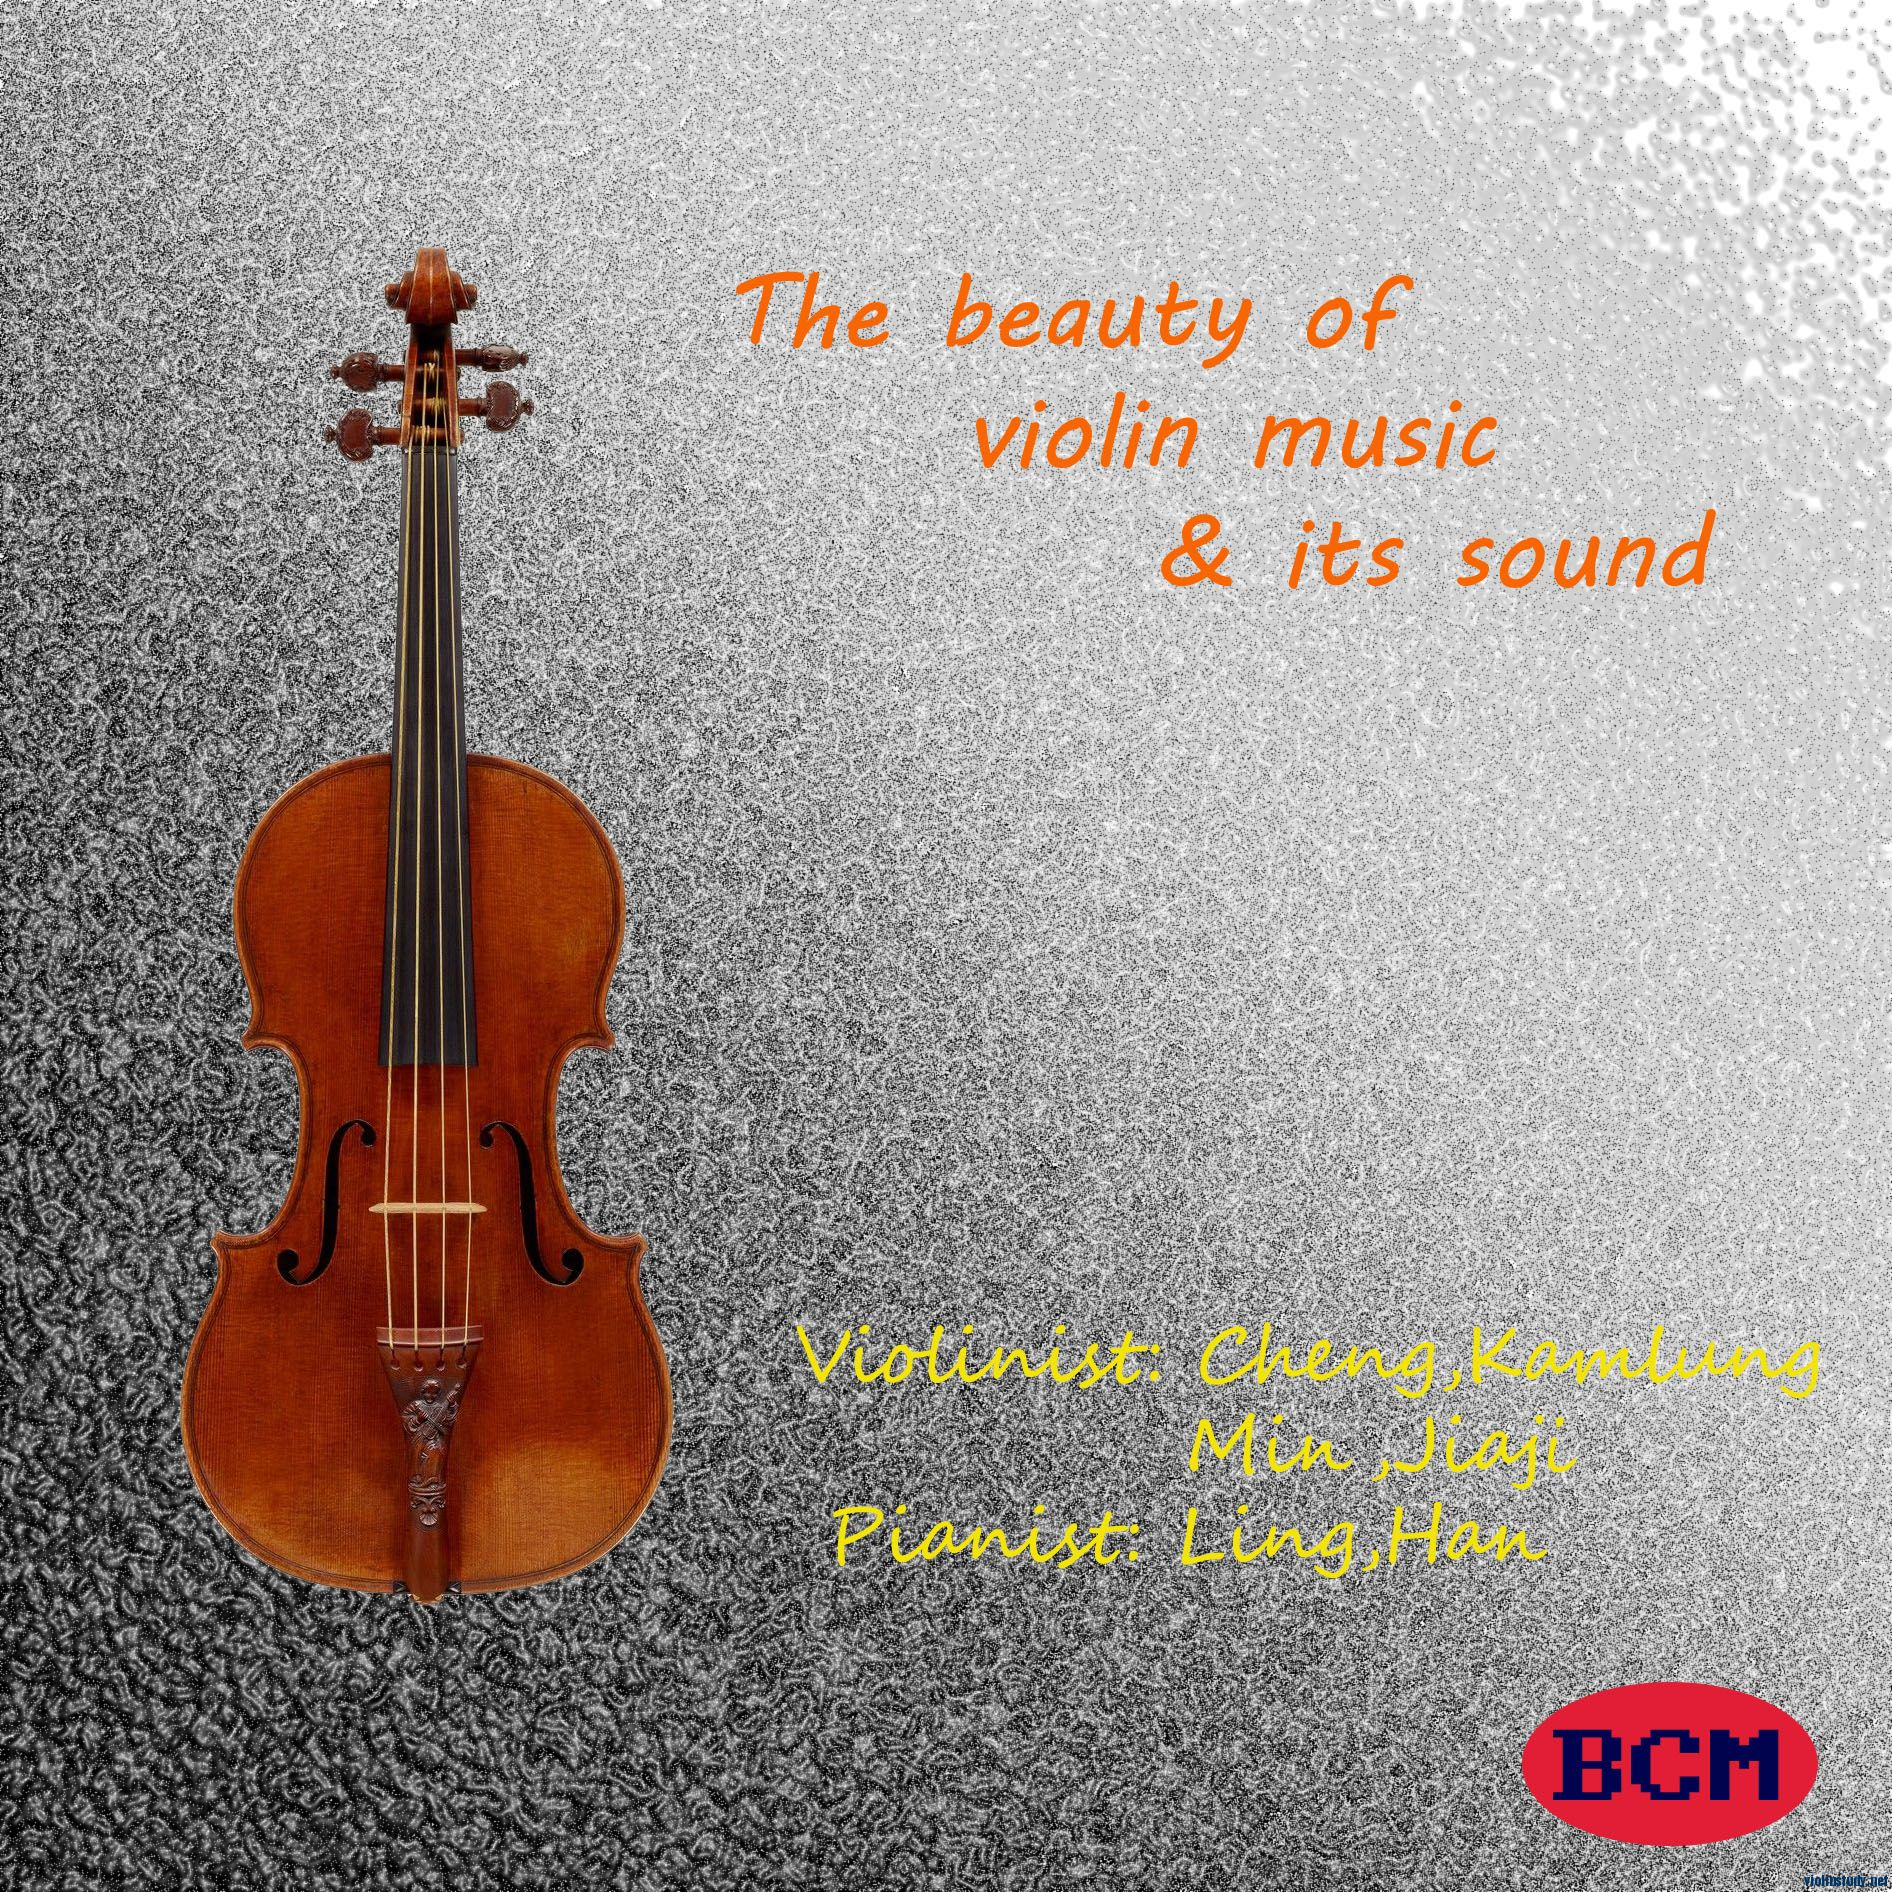 Beauty of violin music Front.jpg